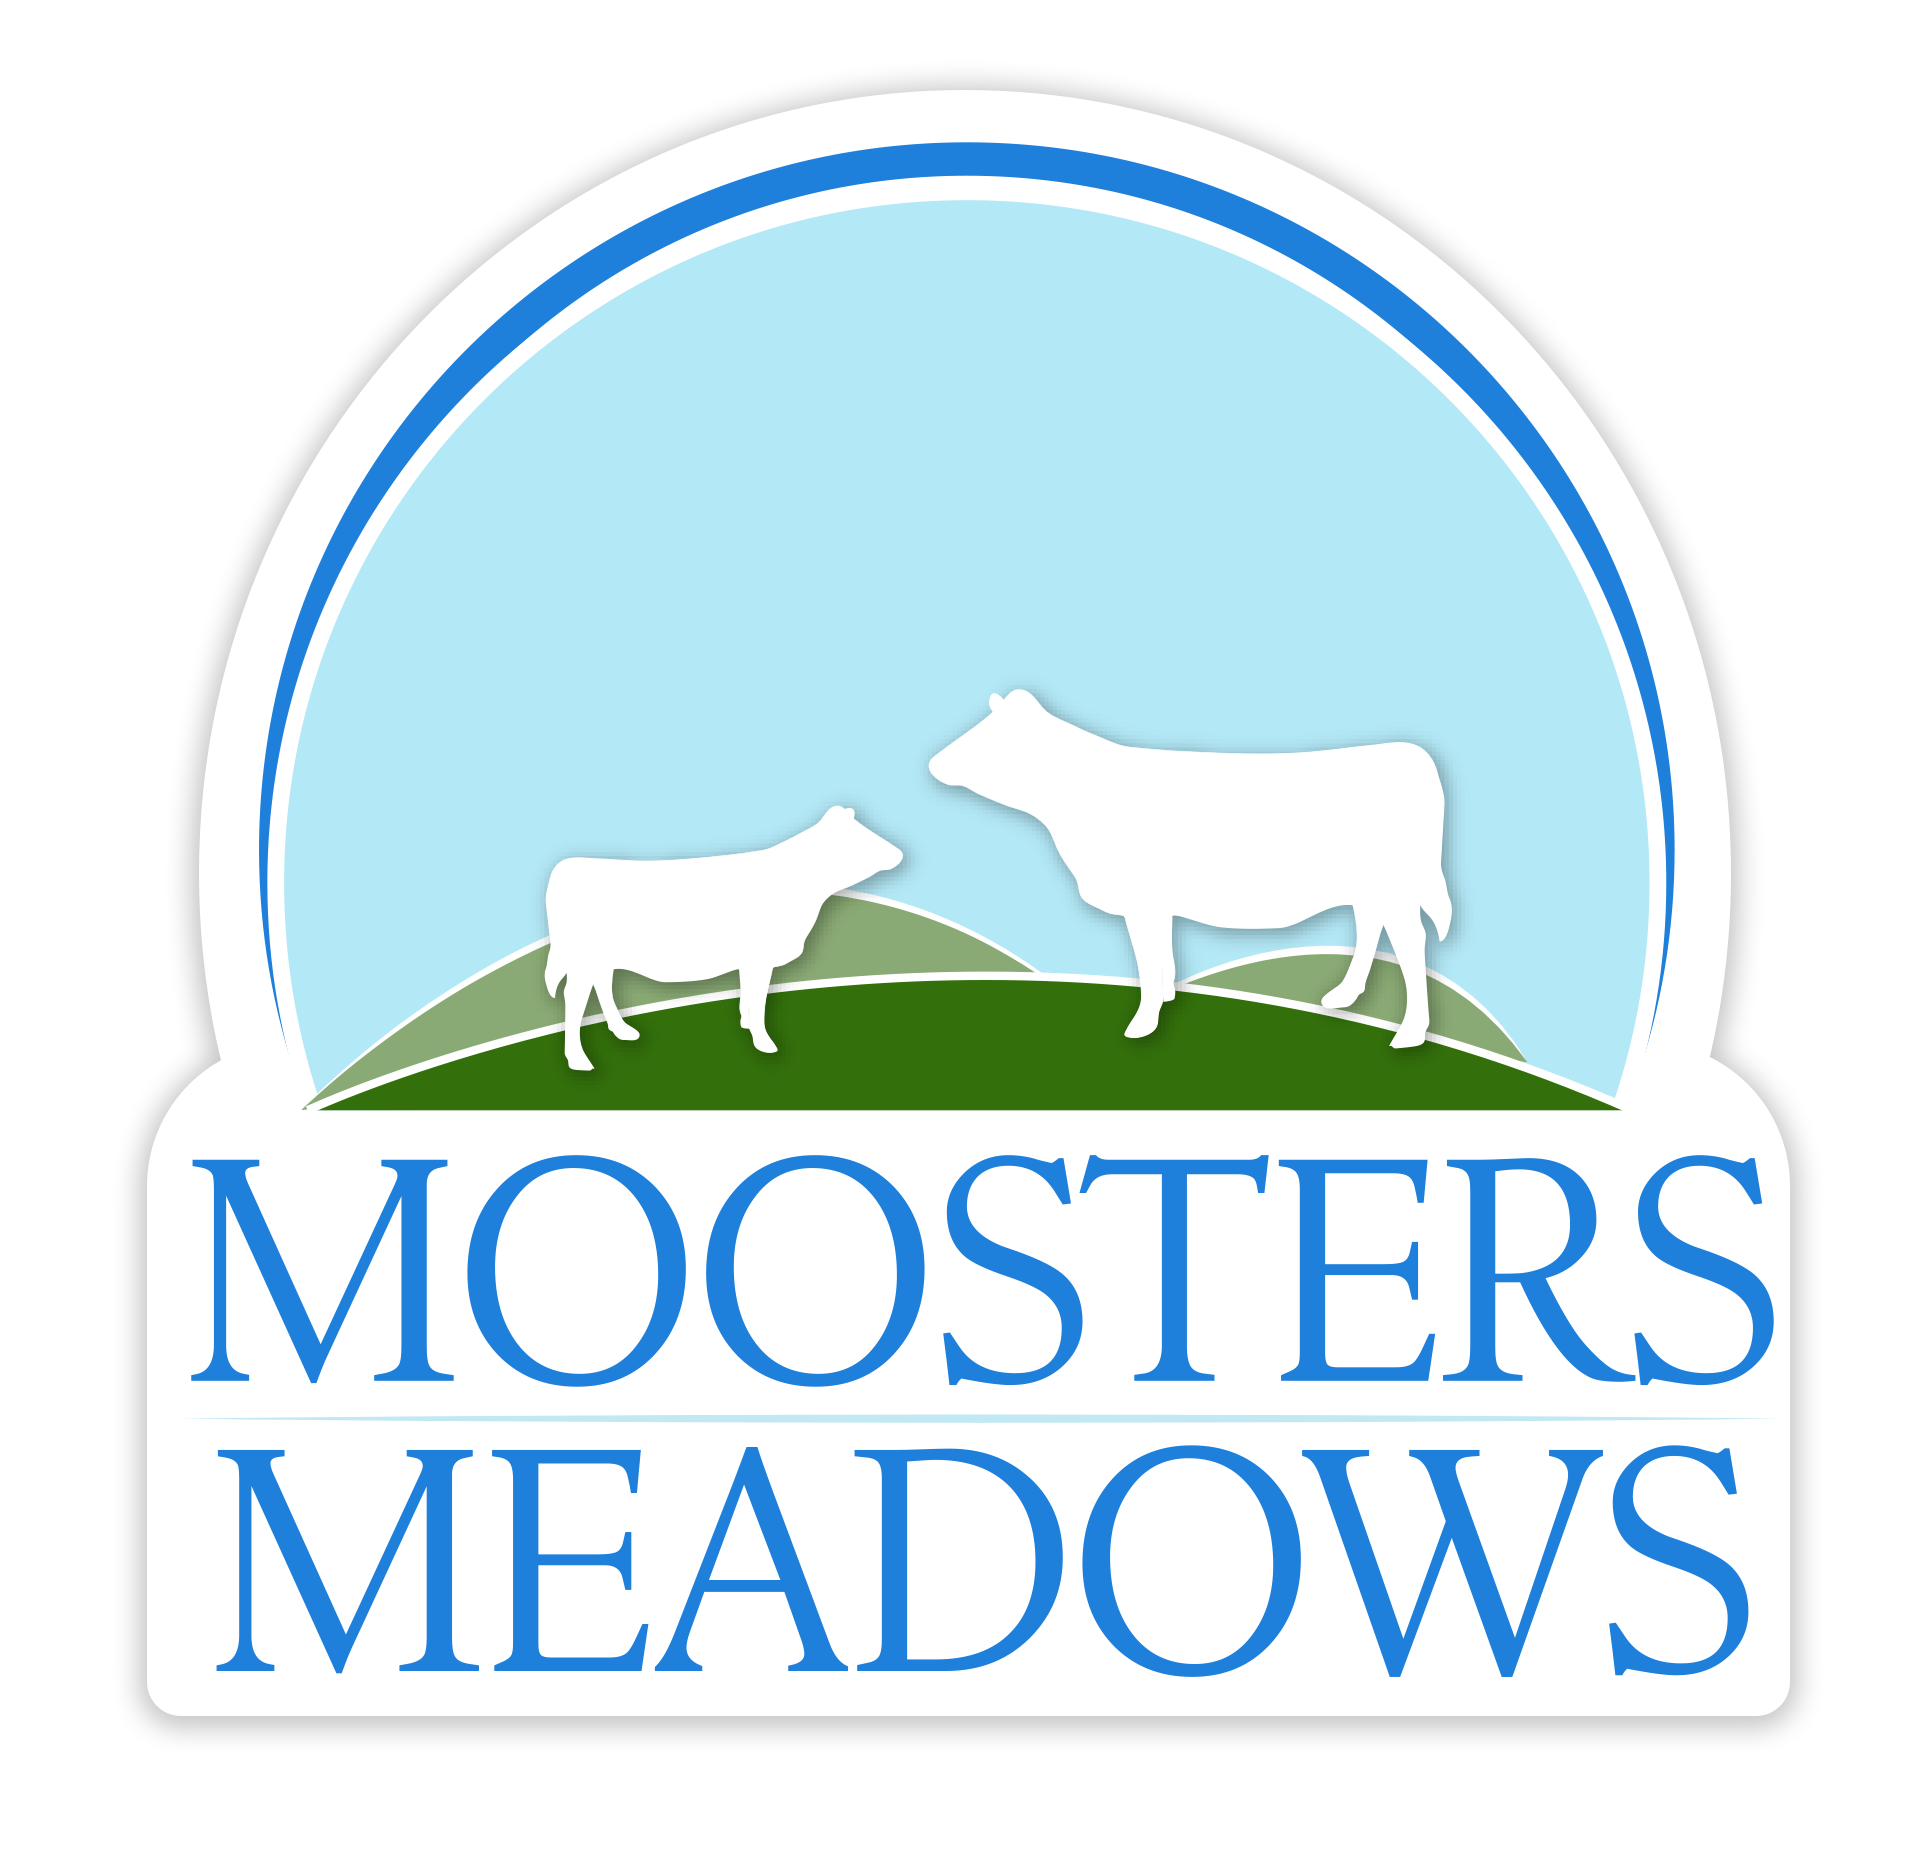 Moosters Meadows